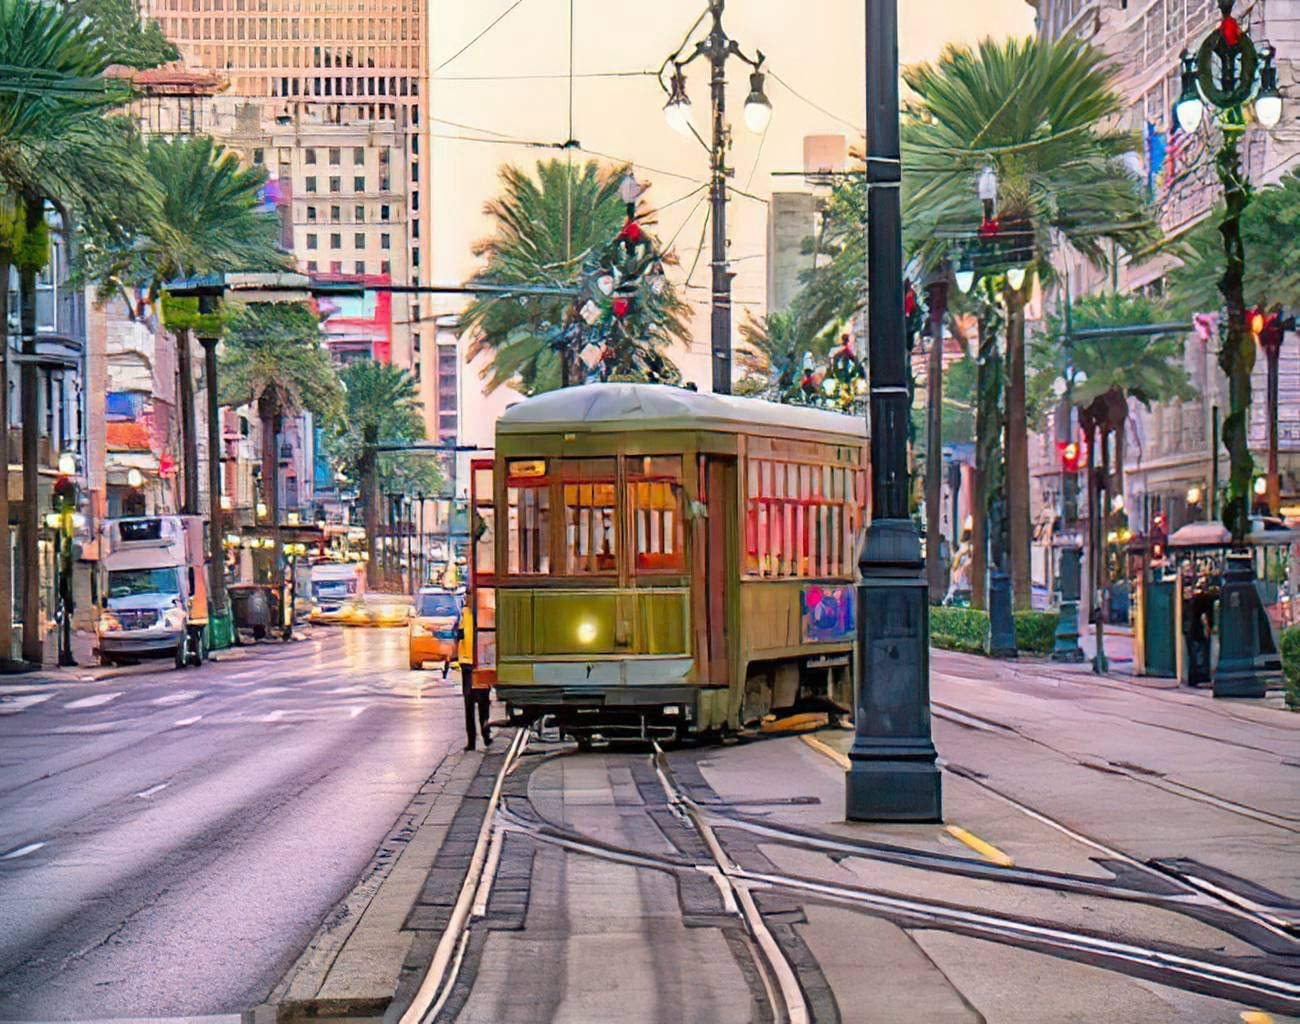 Aluffay USA Downtown Diamond Painting Kits, Streetcar in Downtown New Orleans USA at Twilight, 5D DIY Full Drill Diamond Art Set for Home Wall Decor Adults and Kids 12 x 16 inch